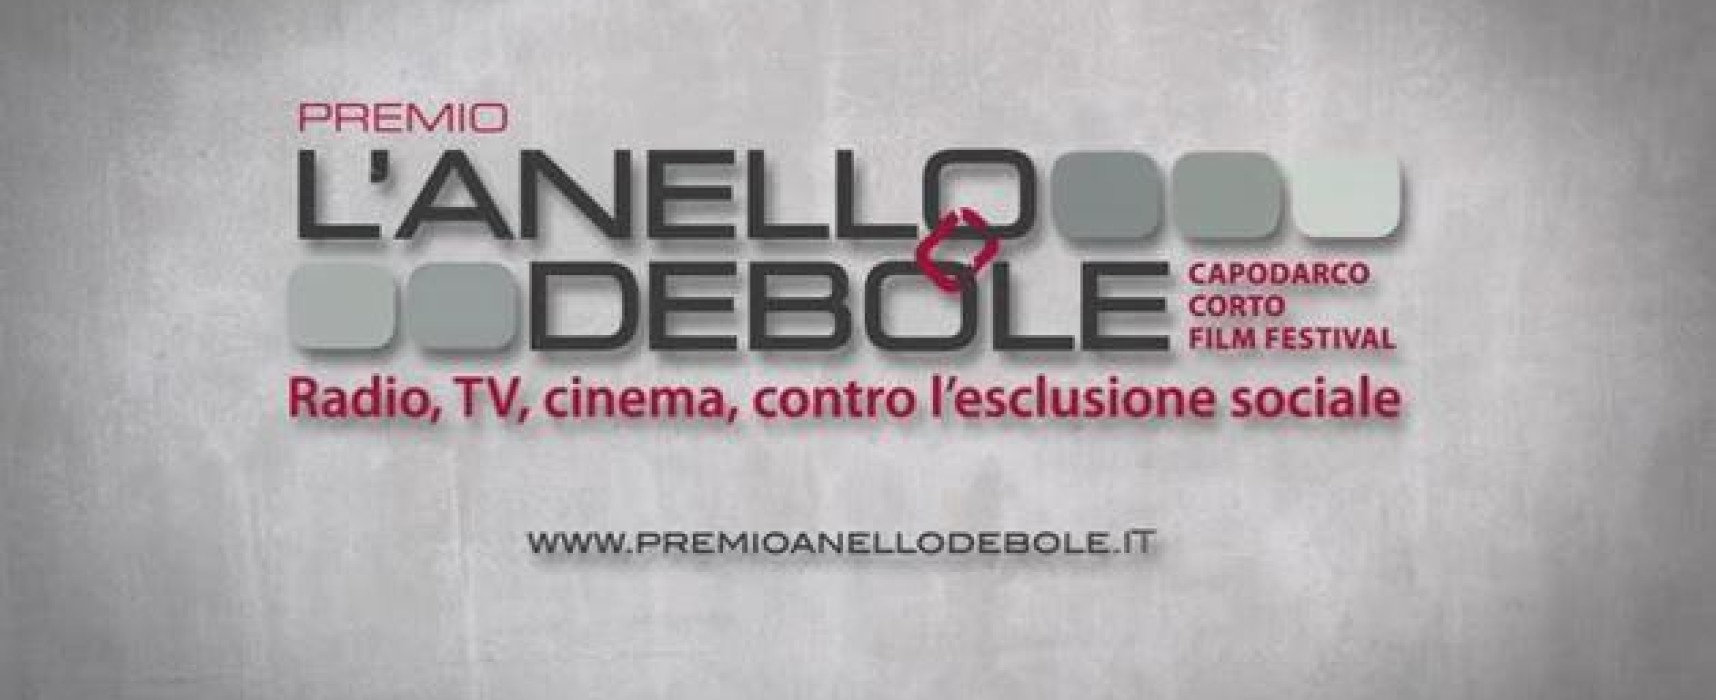 Premio L'anello debole – Concorso audio e video